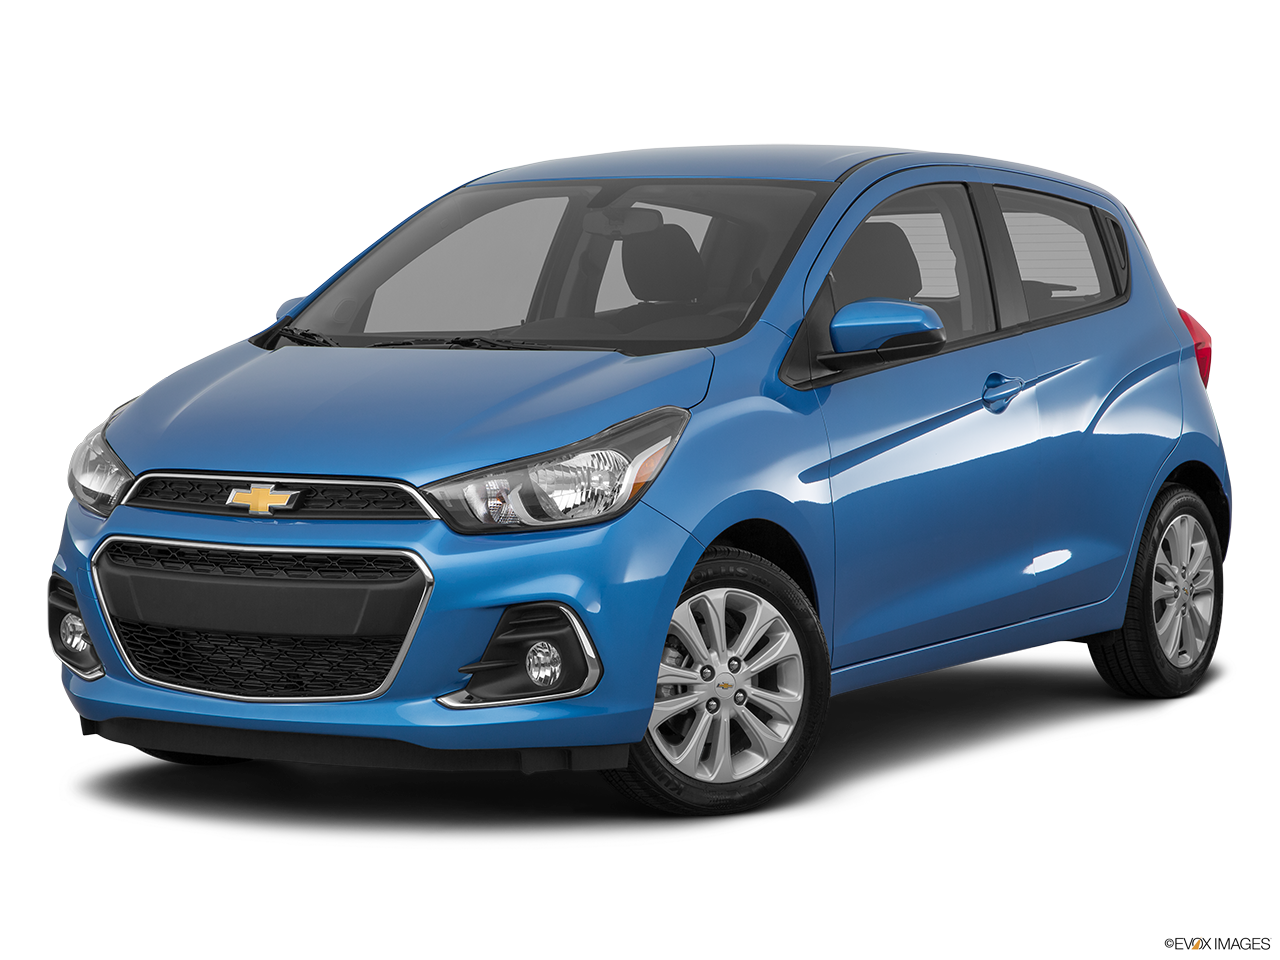 test drive a 2016 chevrolet spark at champion chevrolet in reno. Cars Review. Best American Auto & Cars Review